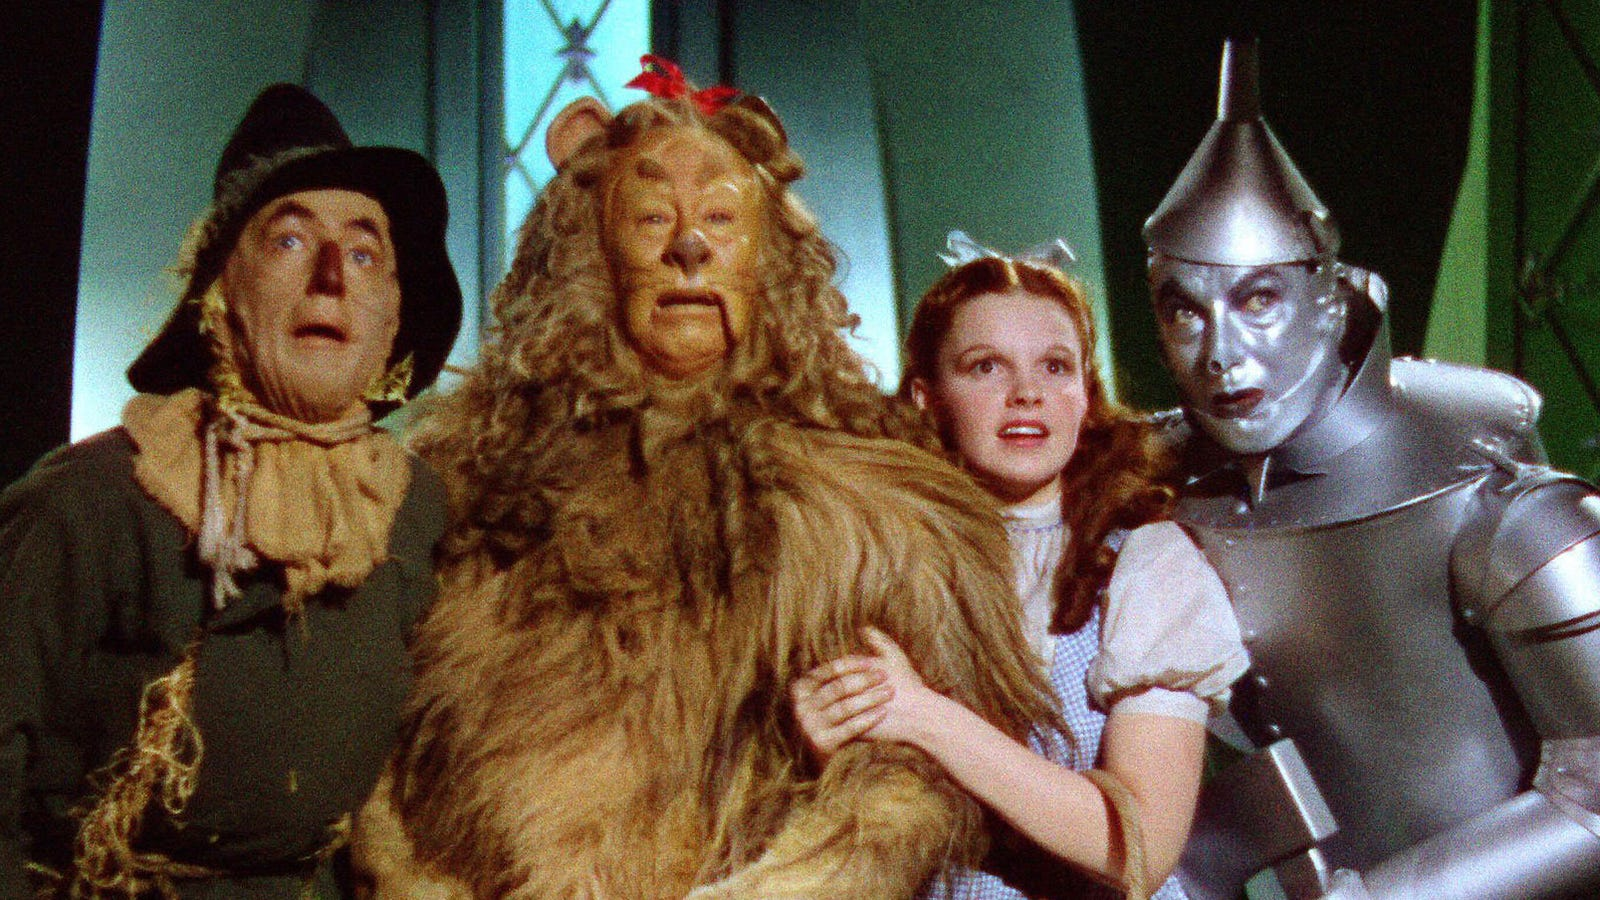 How to Find The 'Wizard of Oz' Ruby Slippers Easter Egg on Google